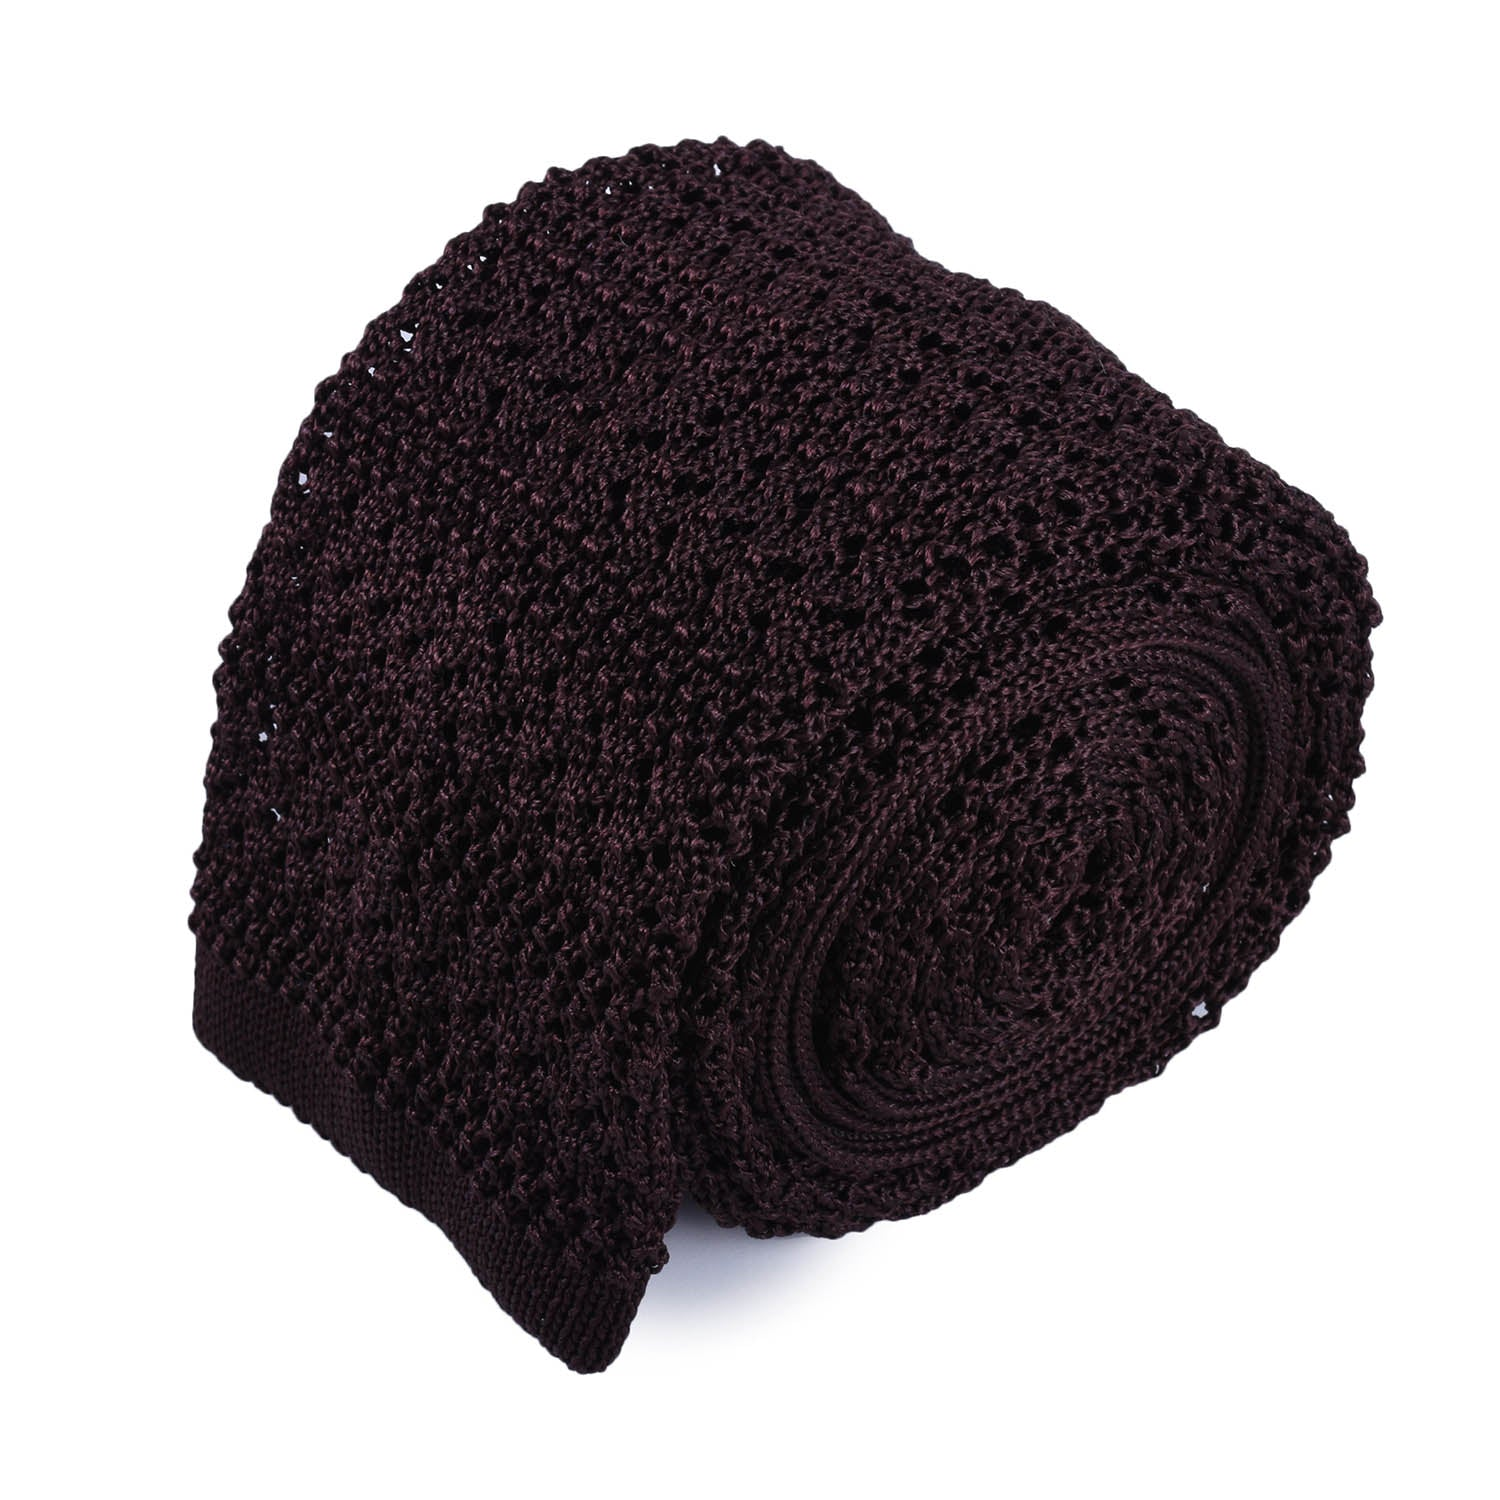 Dark Brown Striped Knitted Tie - serafinesilk